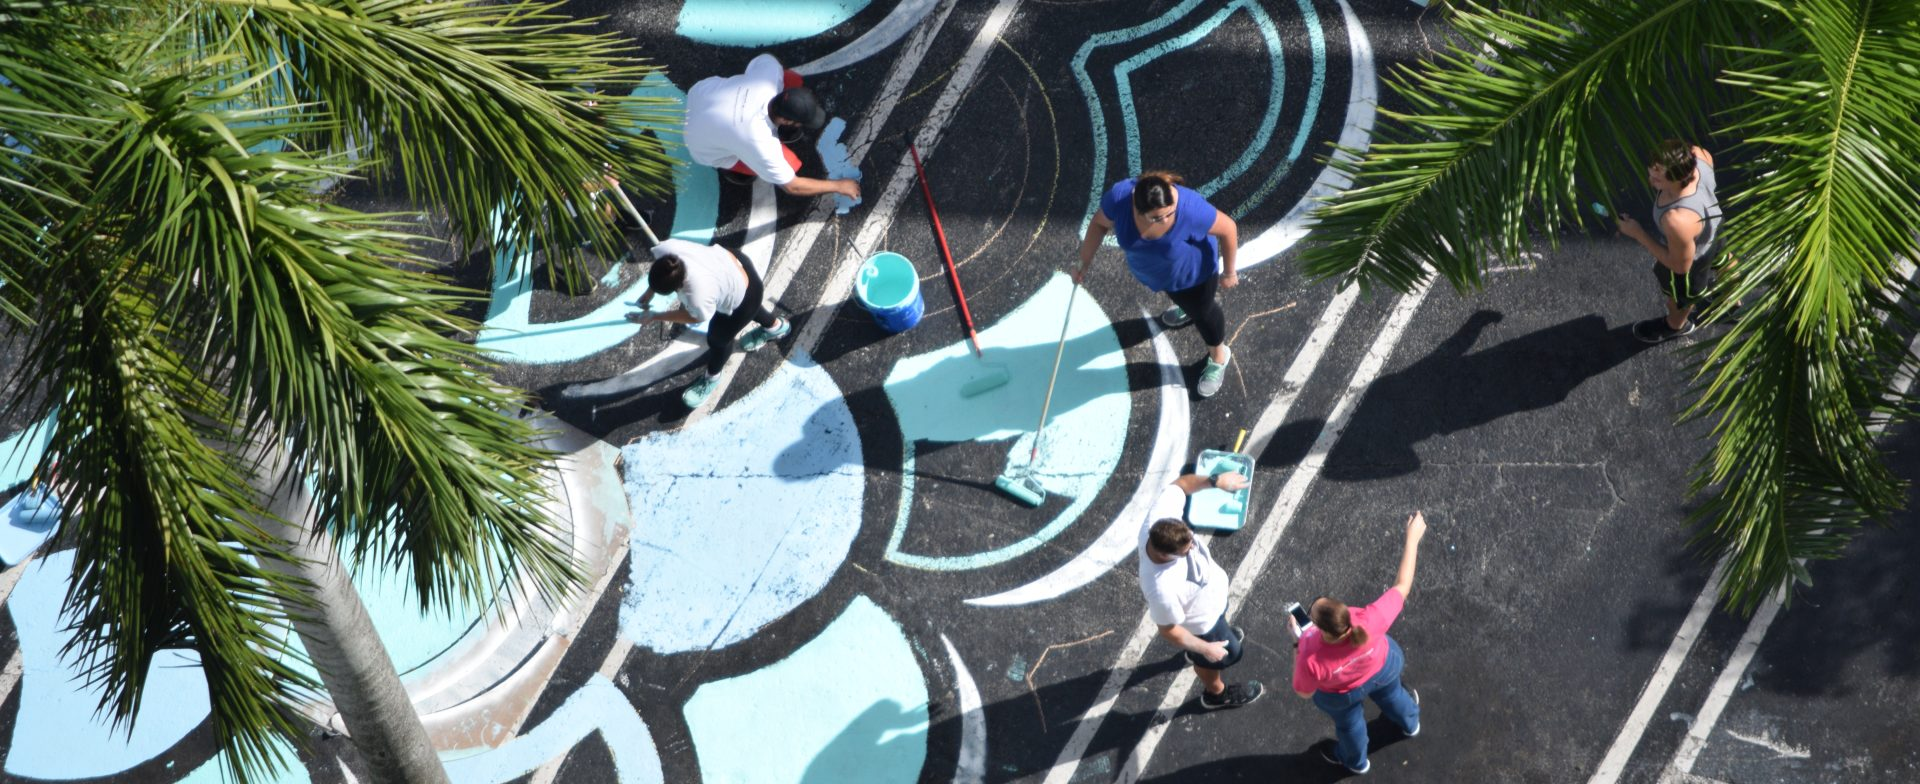 Street Plans + Architecture Students Perform Tactical Urbanism in Monterrey